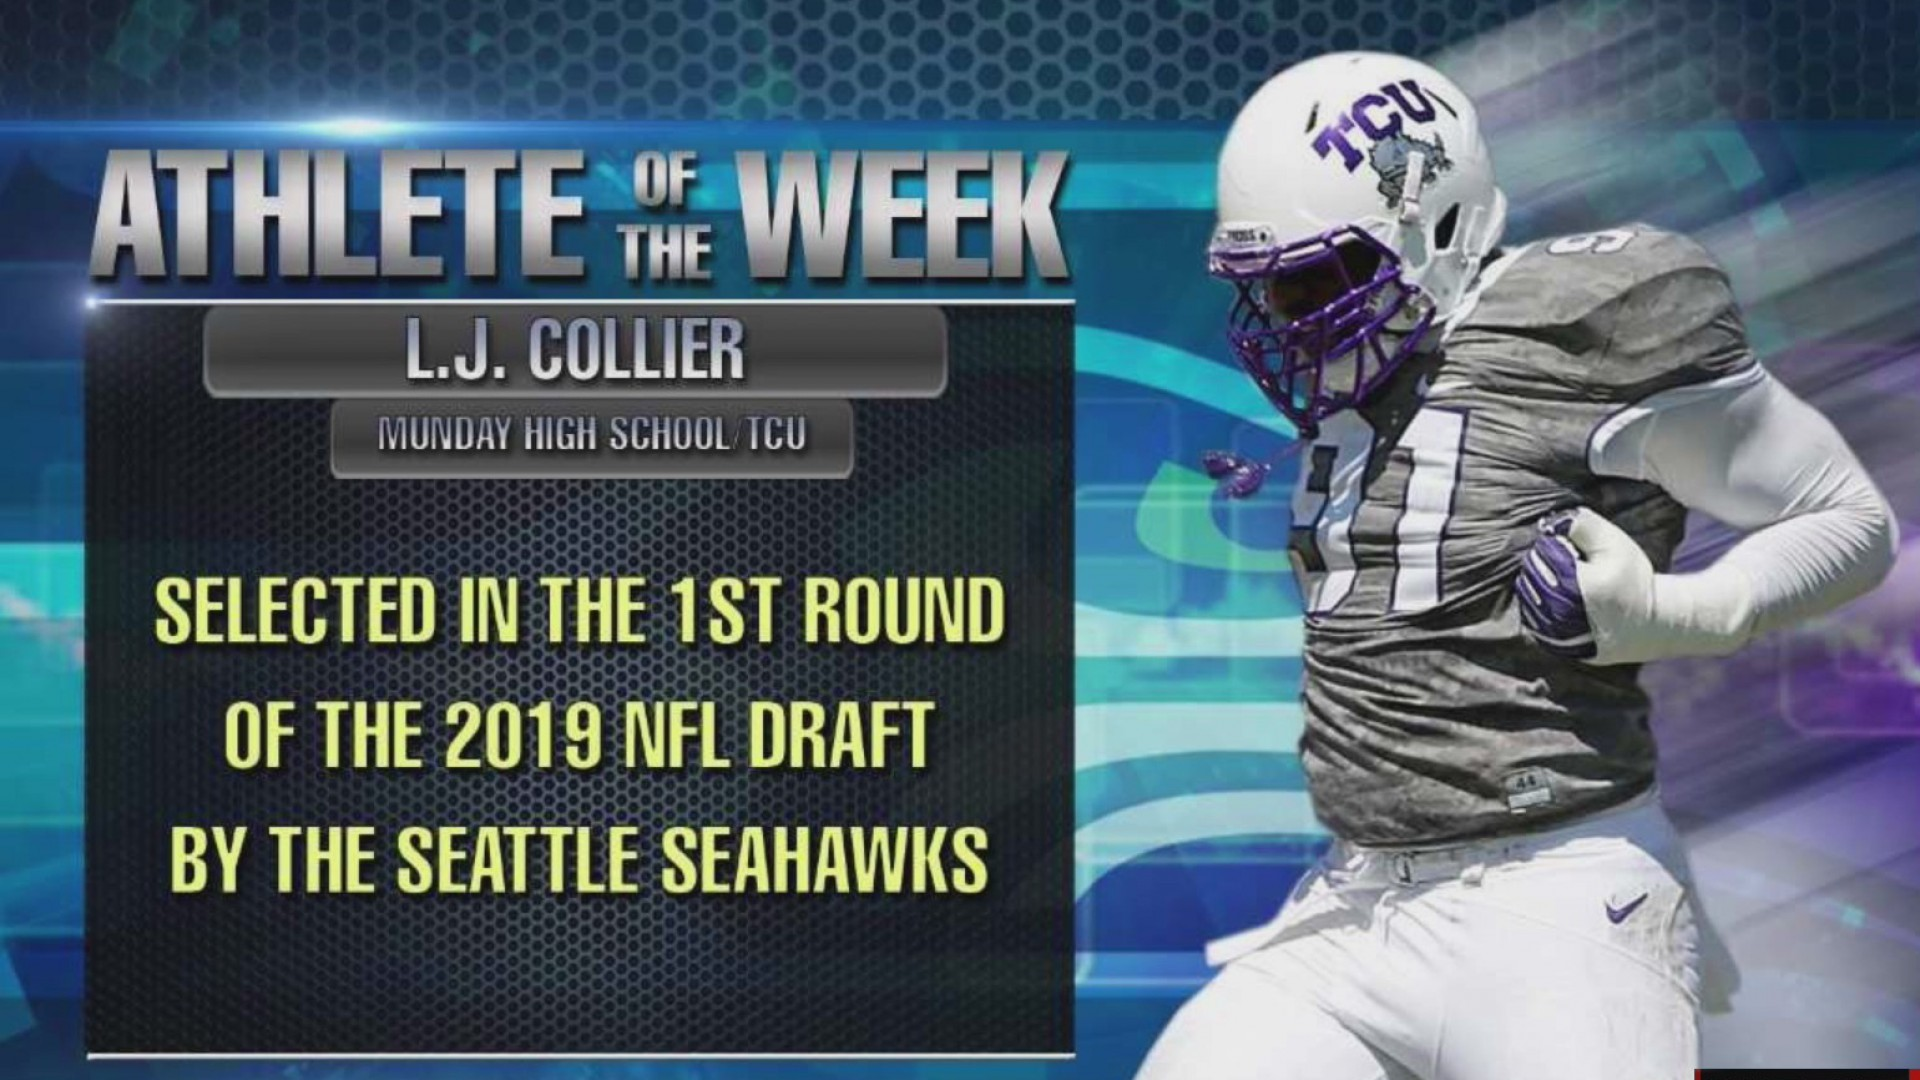 Athlete_of_the_Week__LJ_Collier___April__0_20190430013520